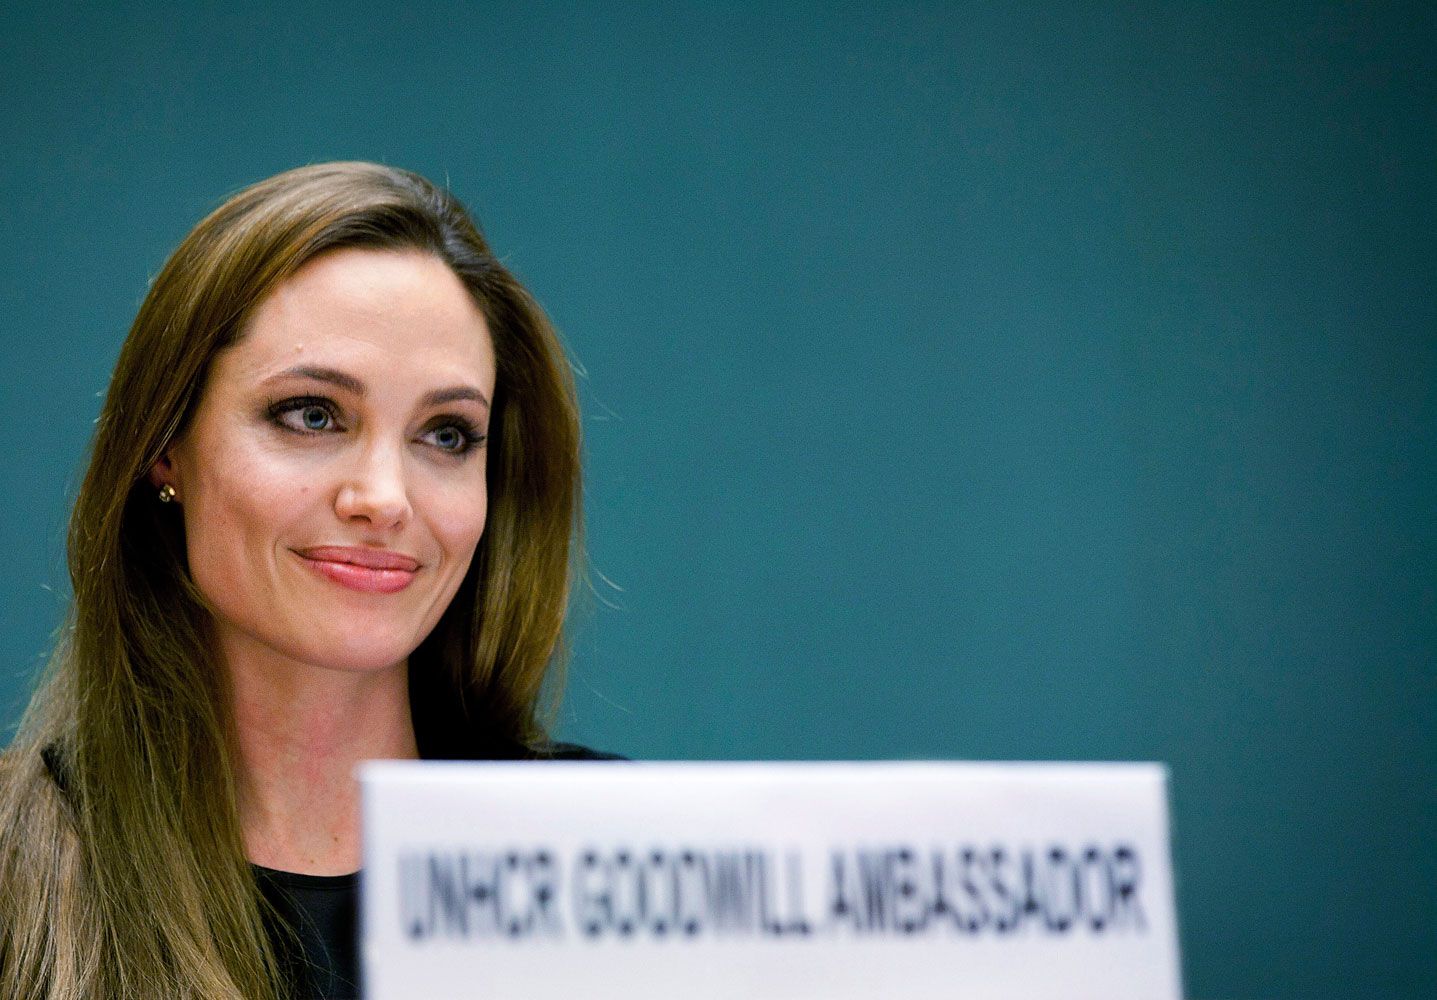 Angelina Jolie speaks during an annual meeting of UNHCR's governing executive committee in Geneva Oct. 4, 2011.